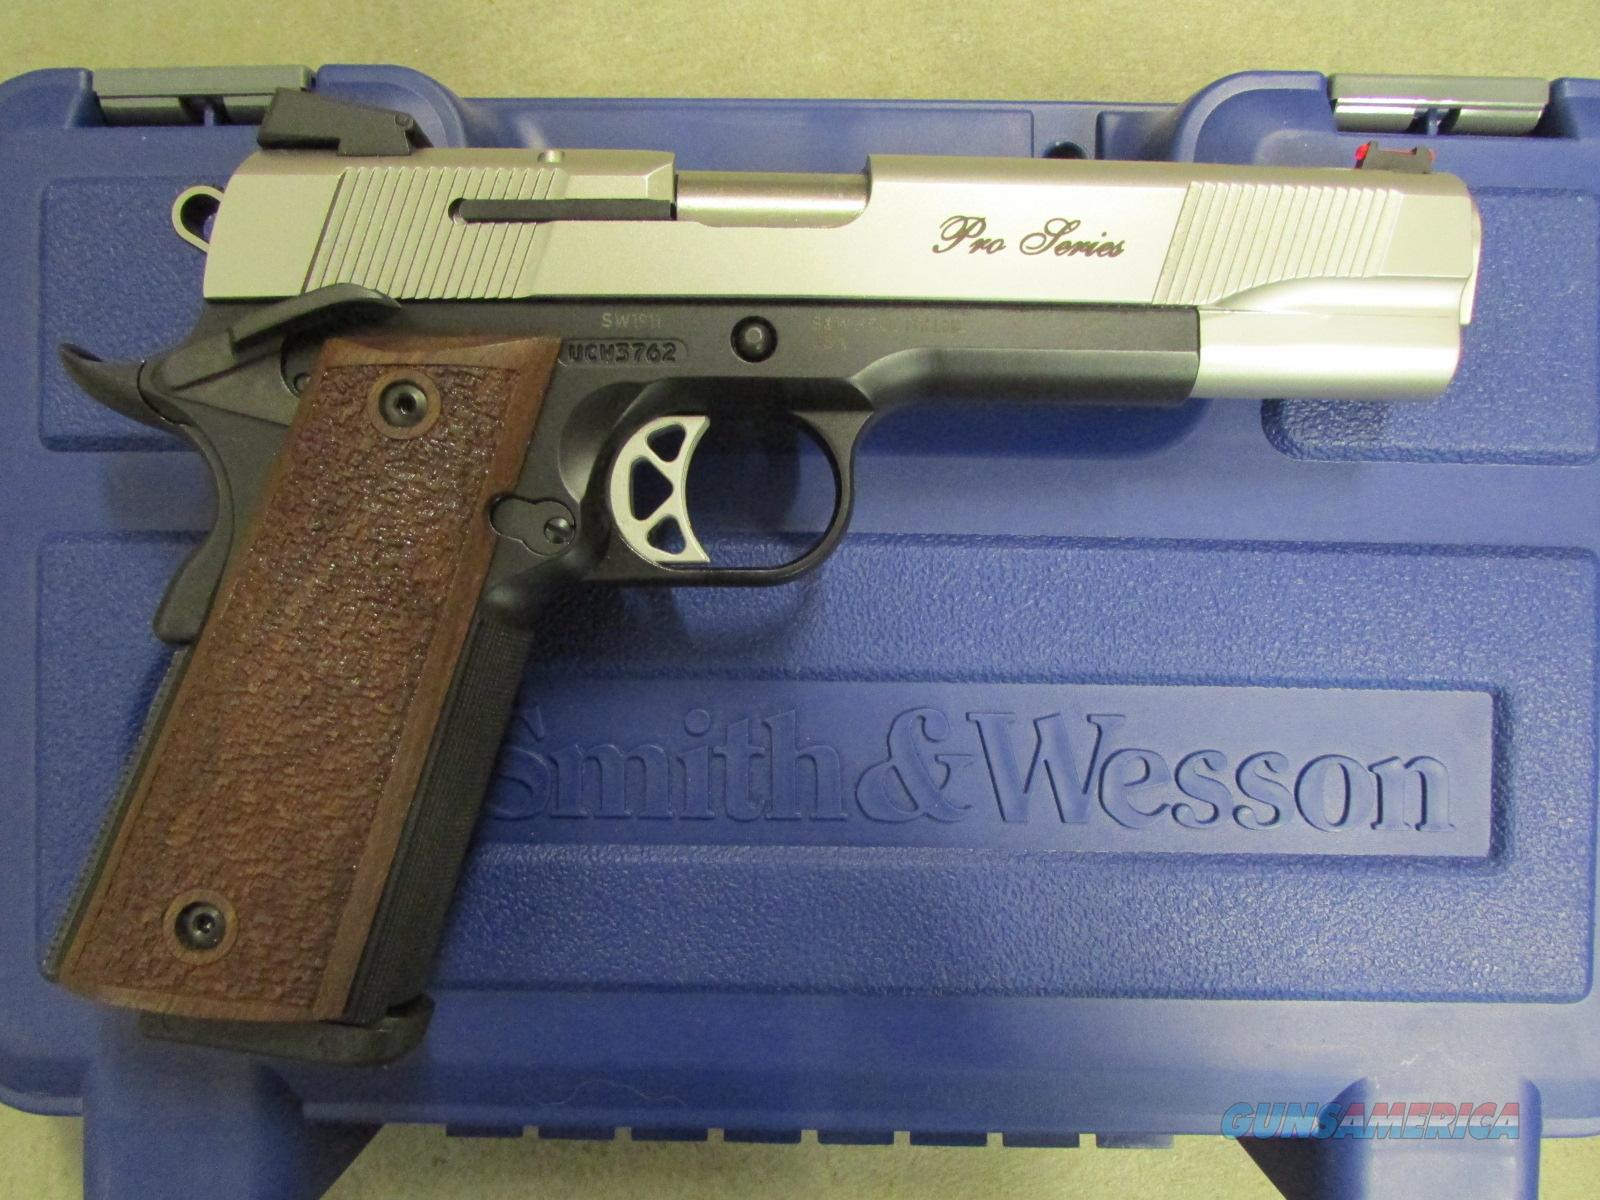 Smith & Wesson Model SW1911 Pro Series .45ACP  Guns > Pistols > Smith & Wesson Pistols - Autos > Steel Frame